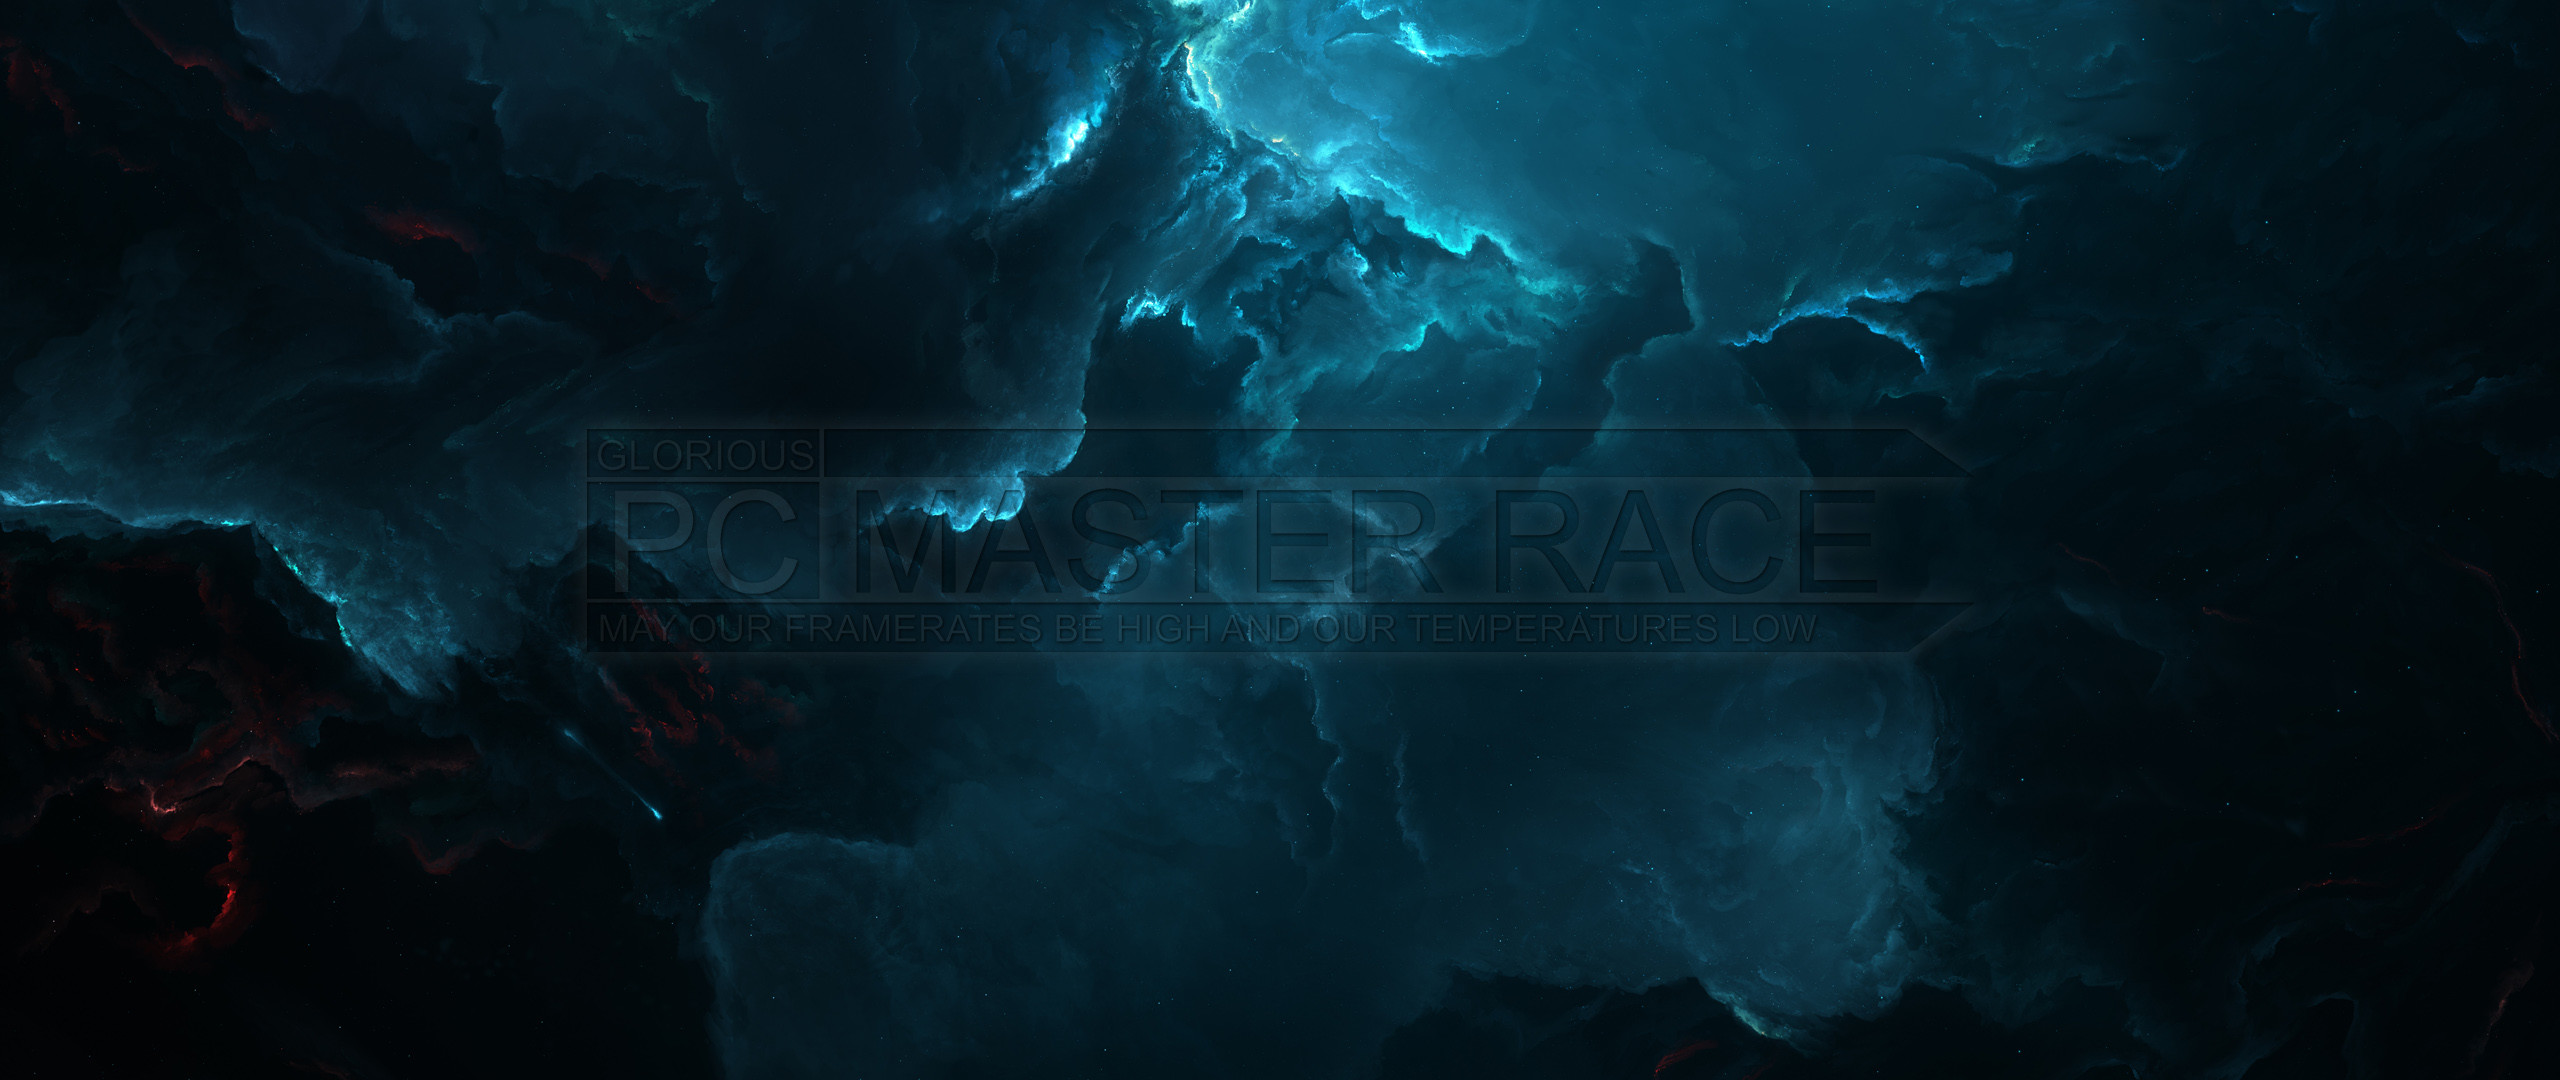 Pc Master Race Full Hd Wallpaper And Background Image: PC Master Race Wallpaper (82+ Images